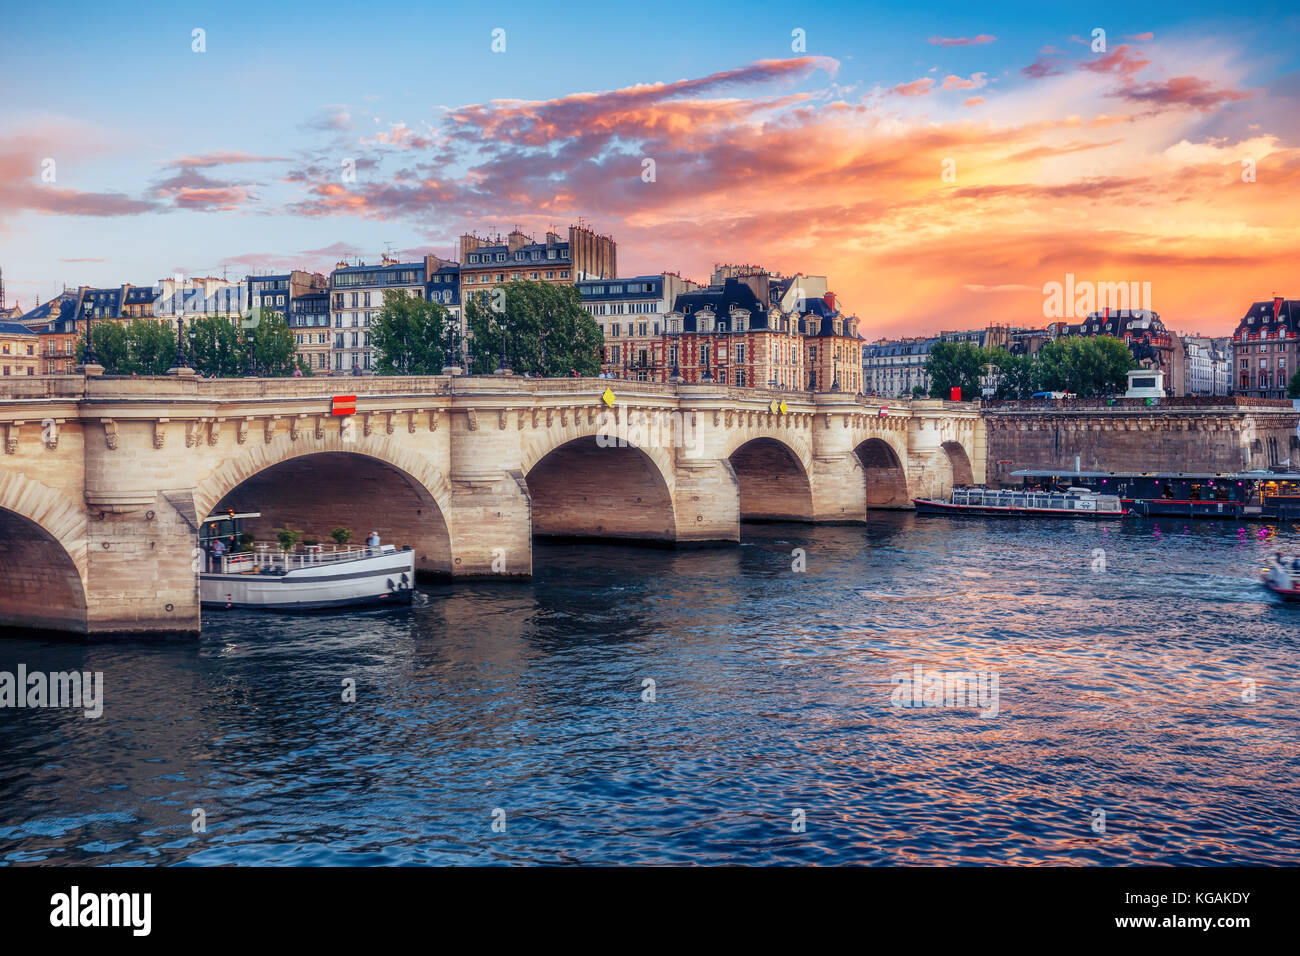 Famous Pont Neuf in Paris, France. Spectacular cityscape with dramatic sunset sky. Travel background. - Stock Image